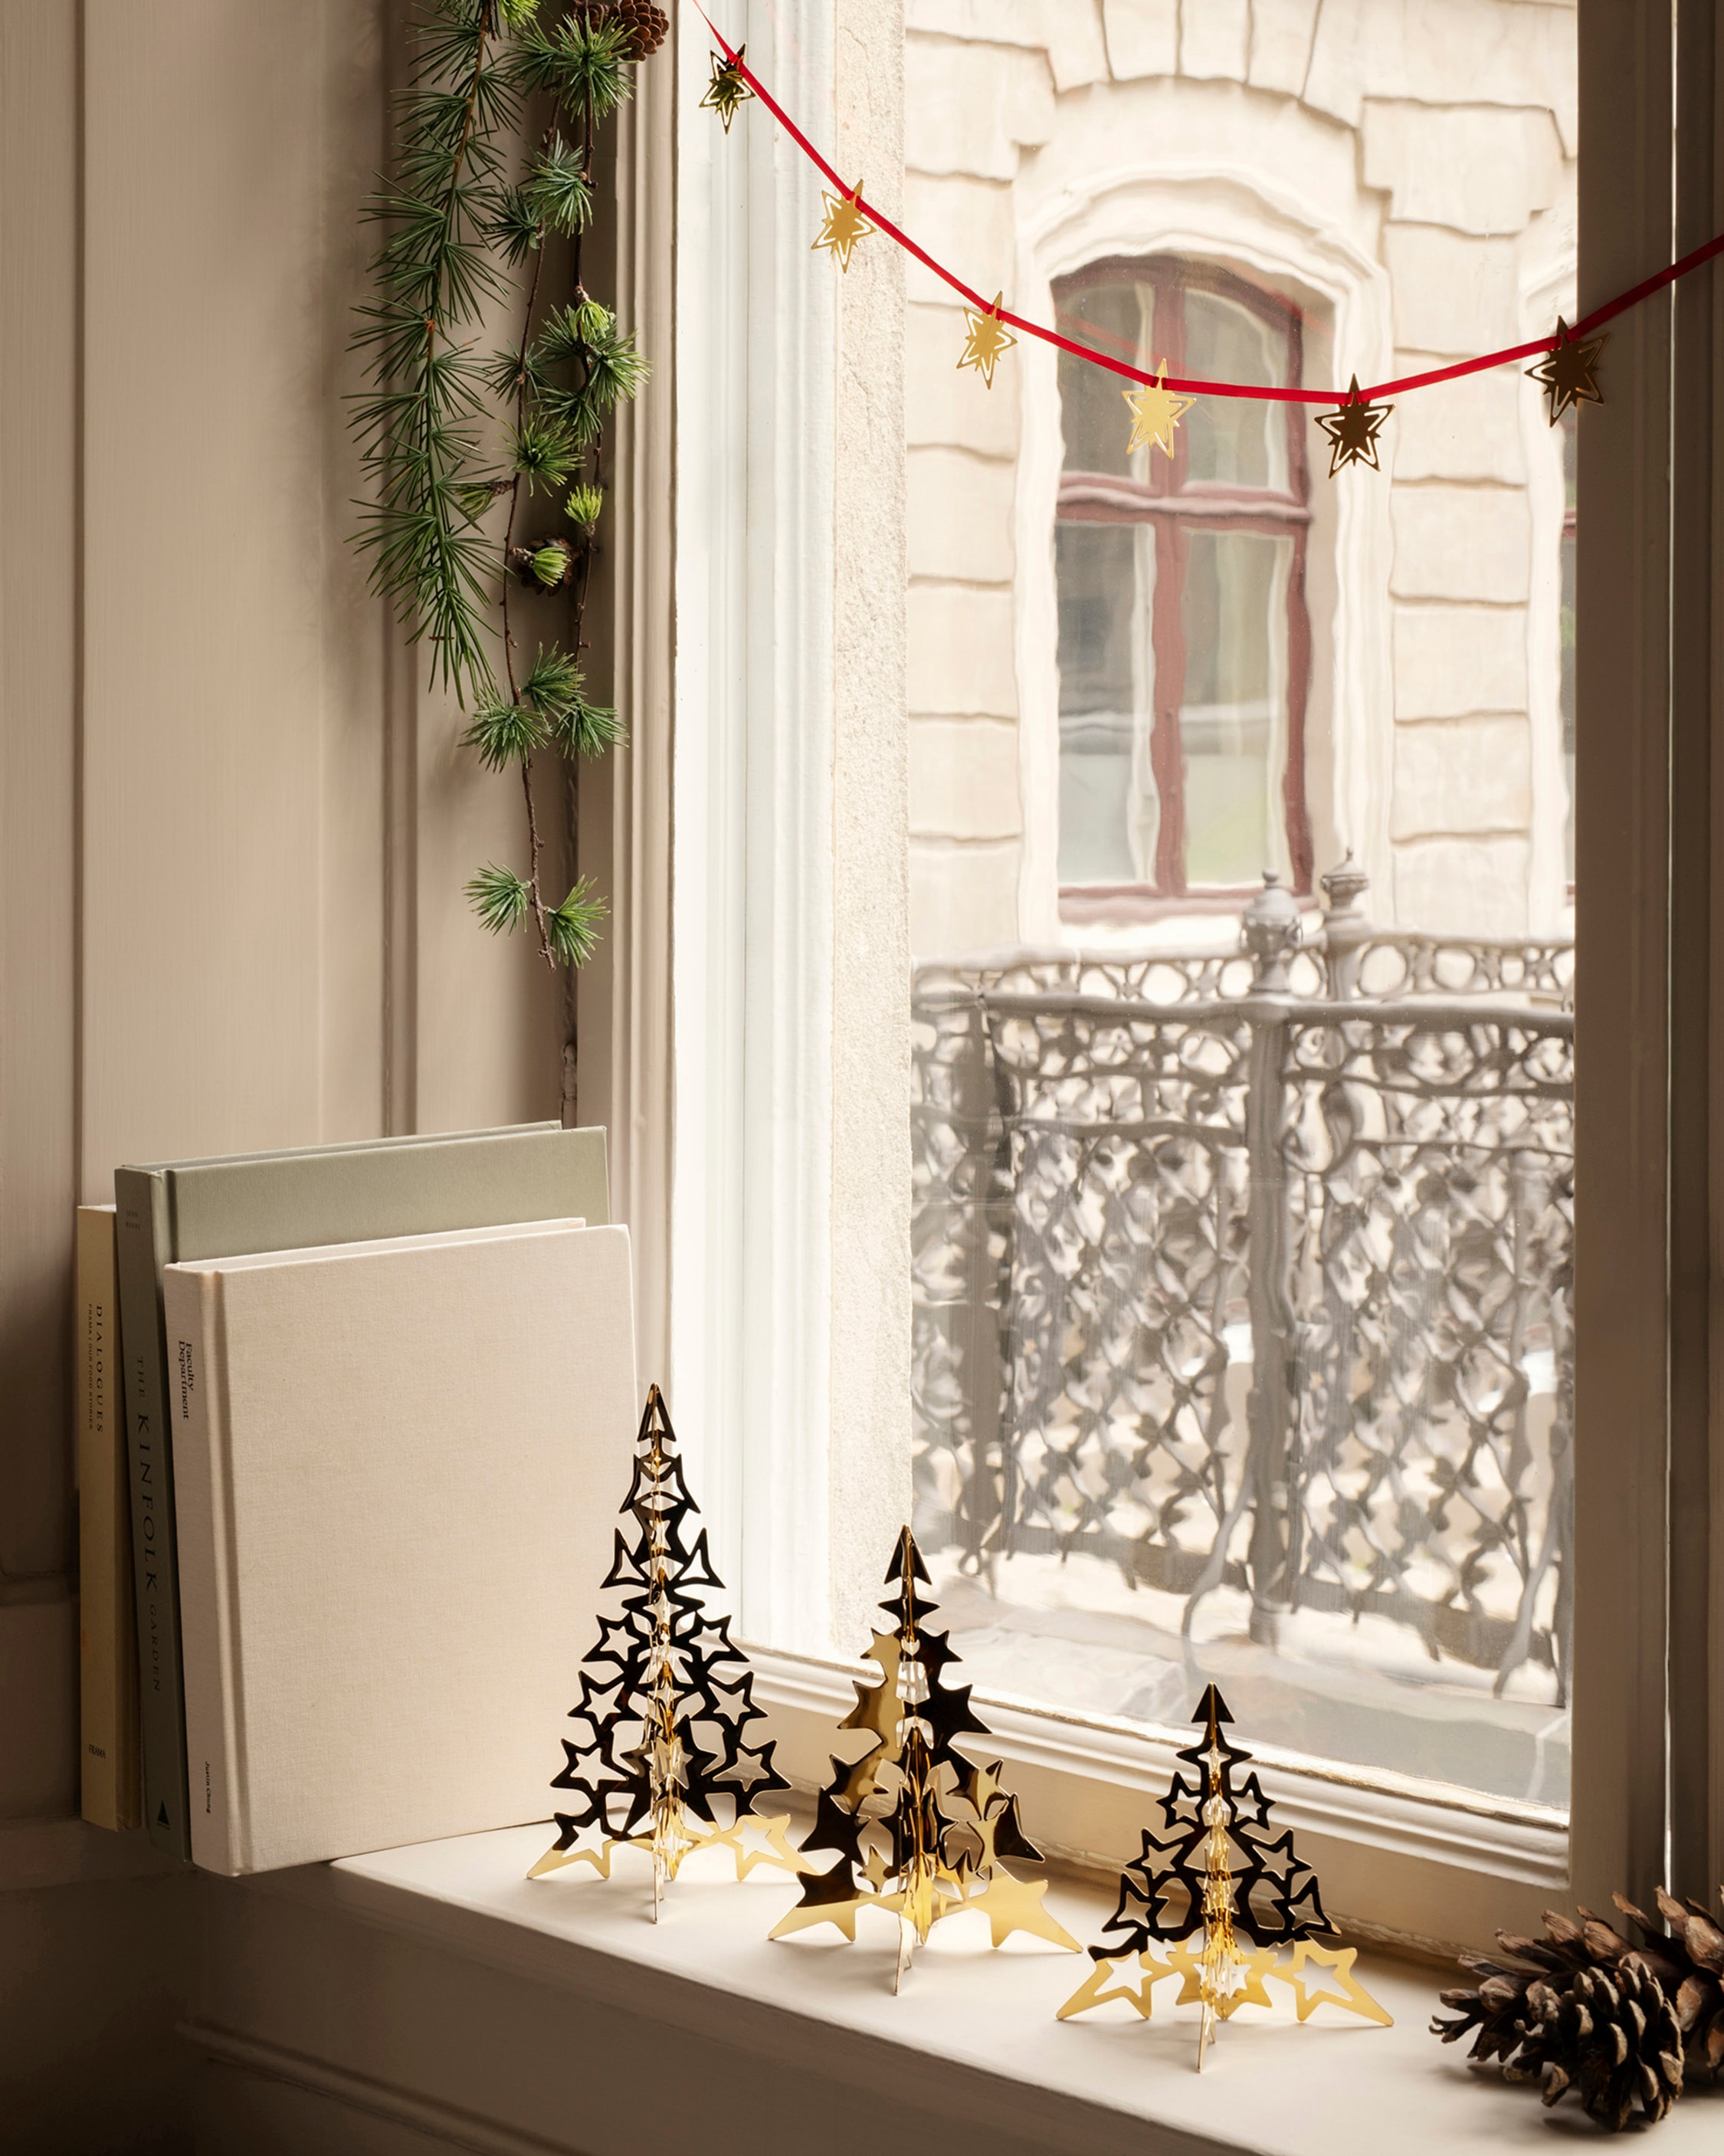 Georg Jensen Christmas Collection 2021 Gold Tree Star - Large 2